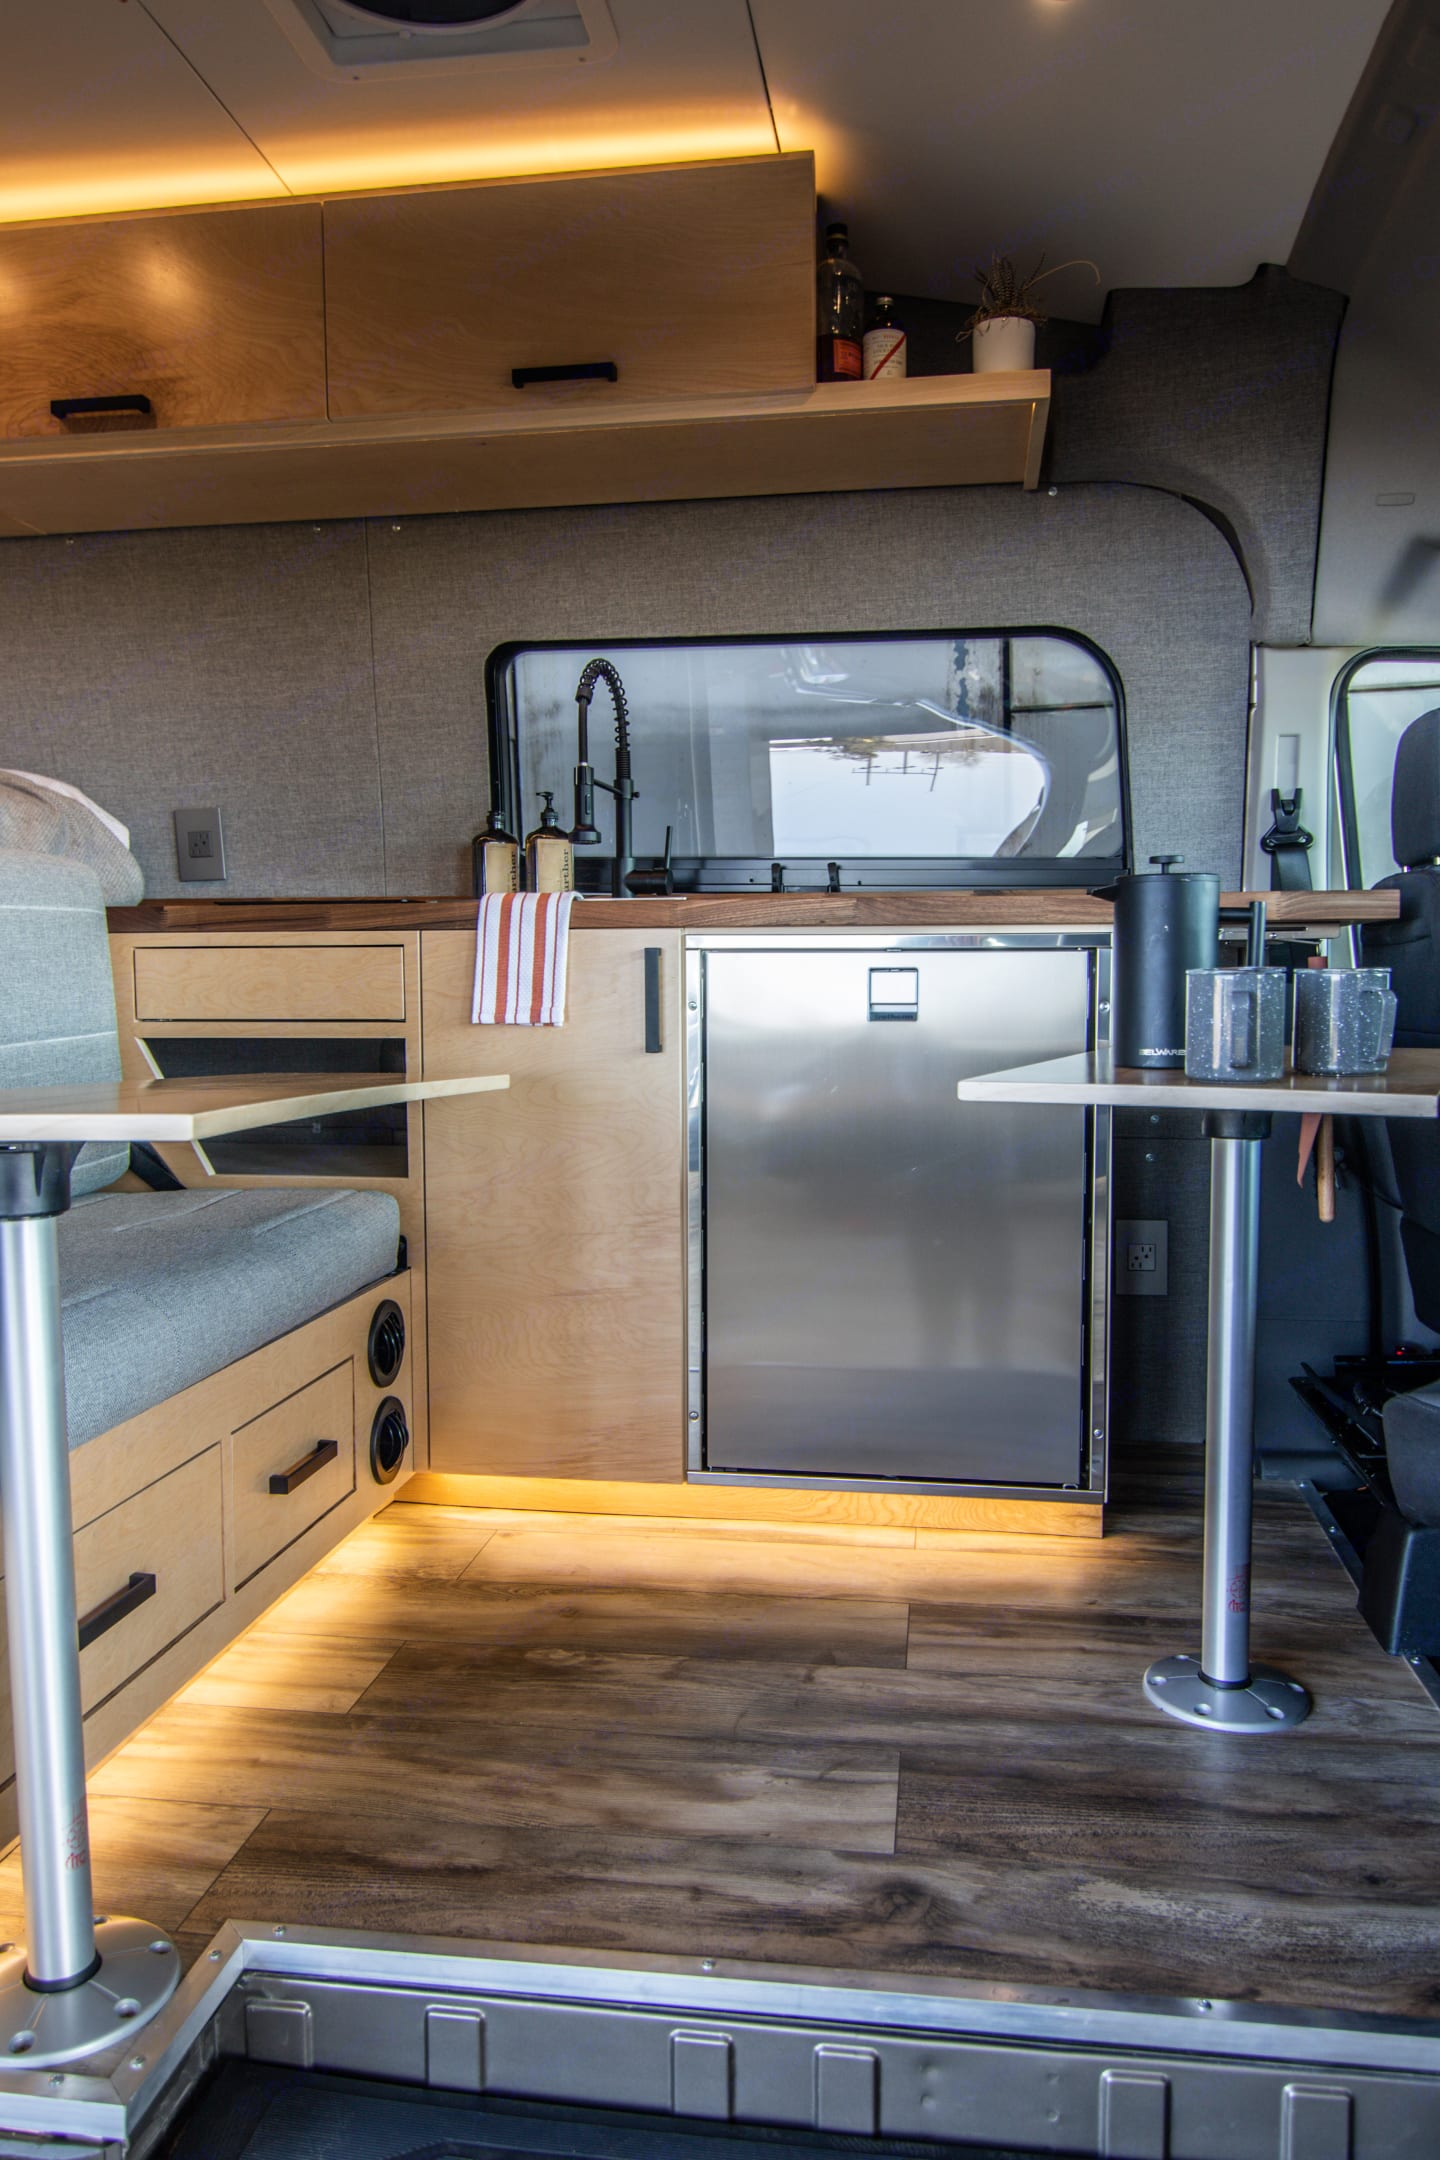 Two tables, sink, and fridge for maximum cocktail hour enjoyment. . Ford Transit 2020